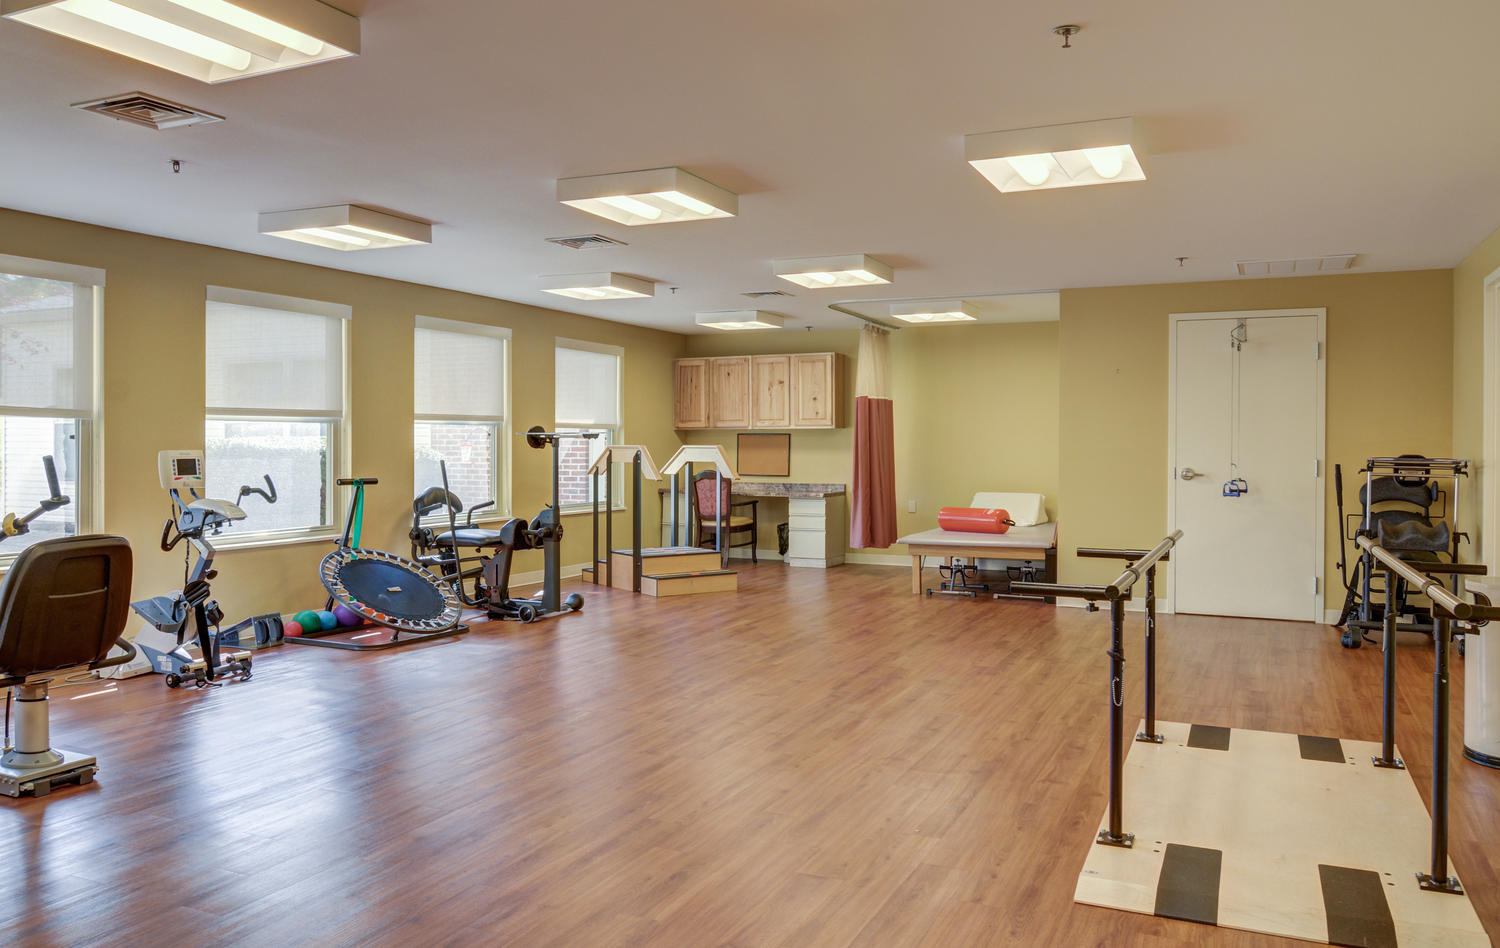 Stonerise Lindside Therapy and Rehabilitation room with equipment